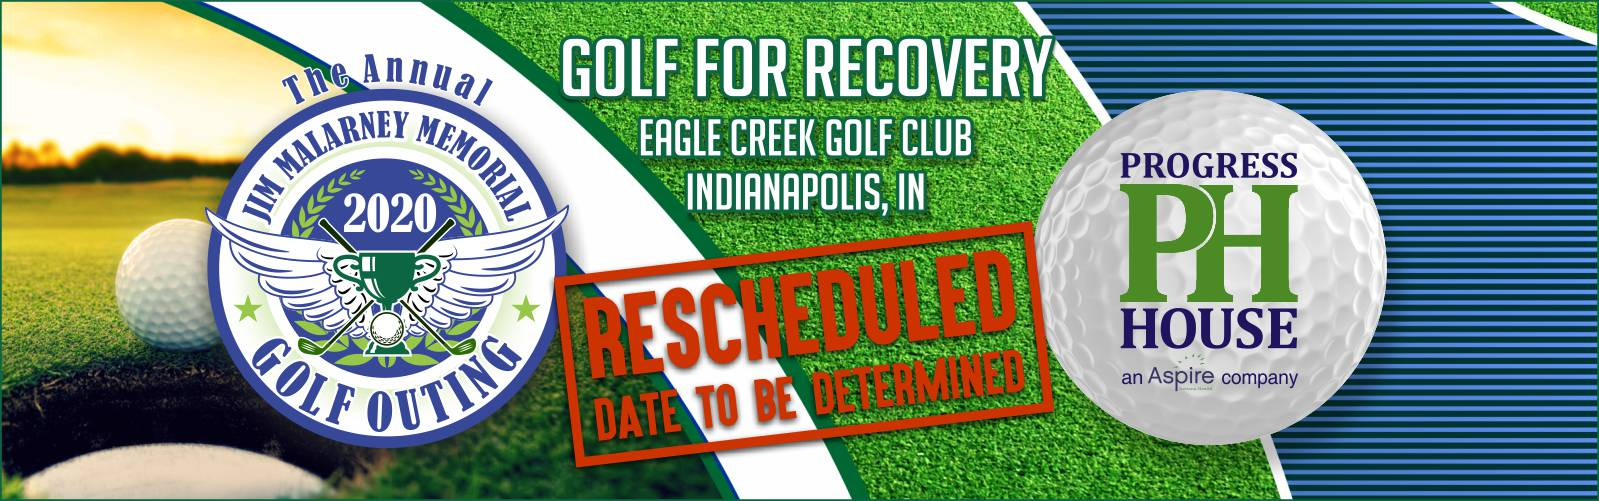 Golf For Recovery